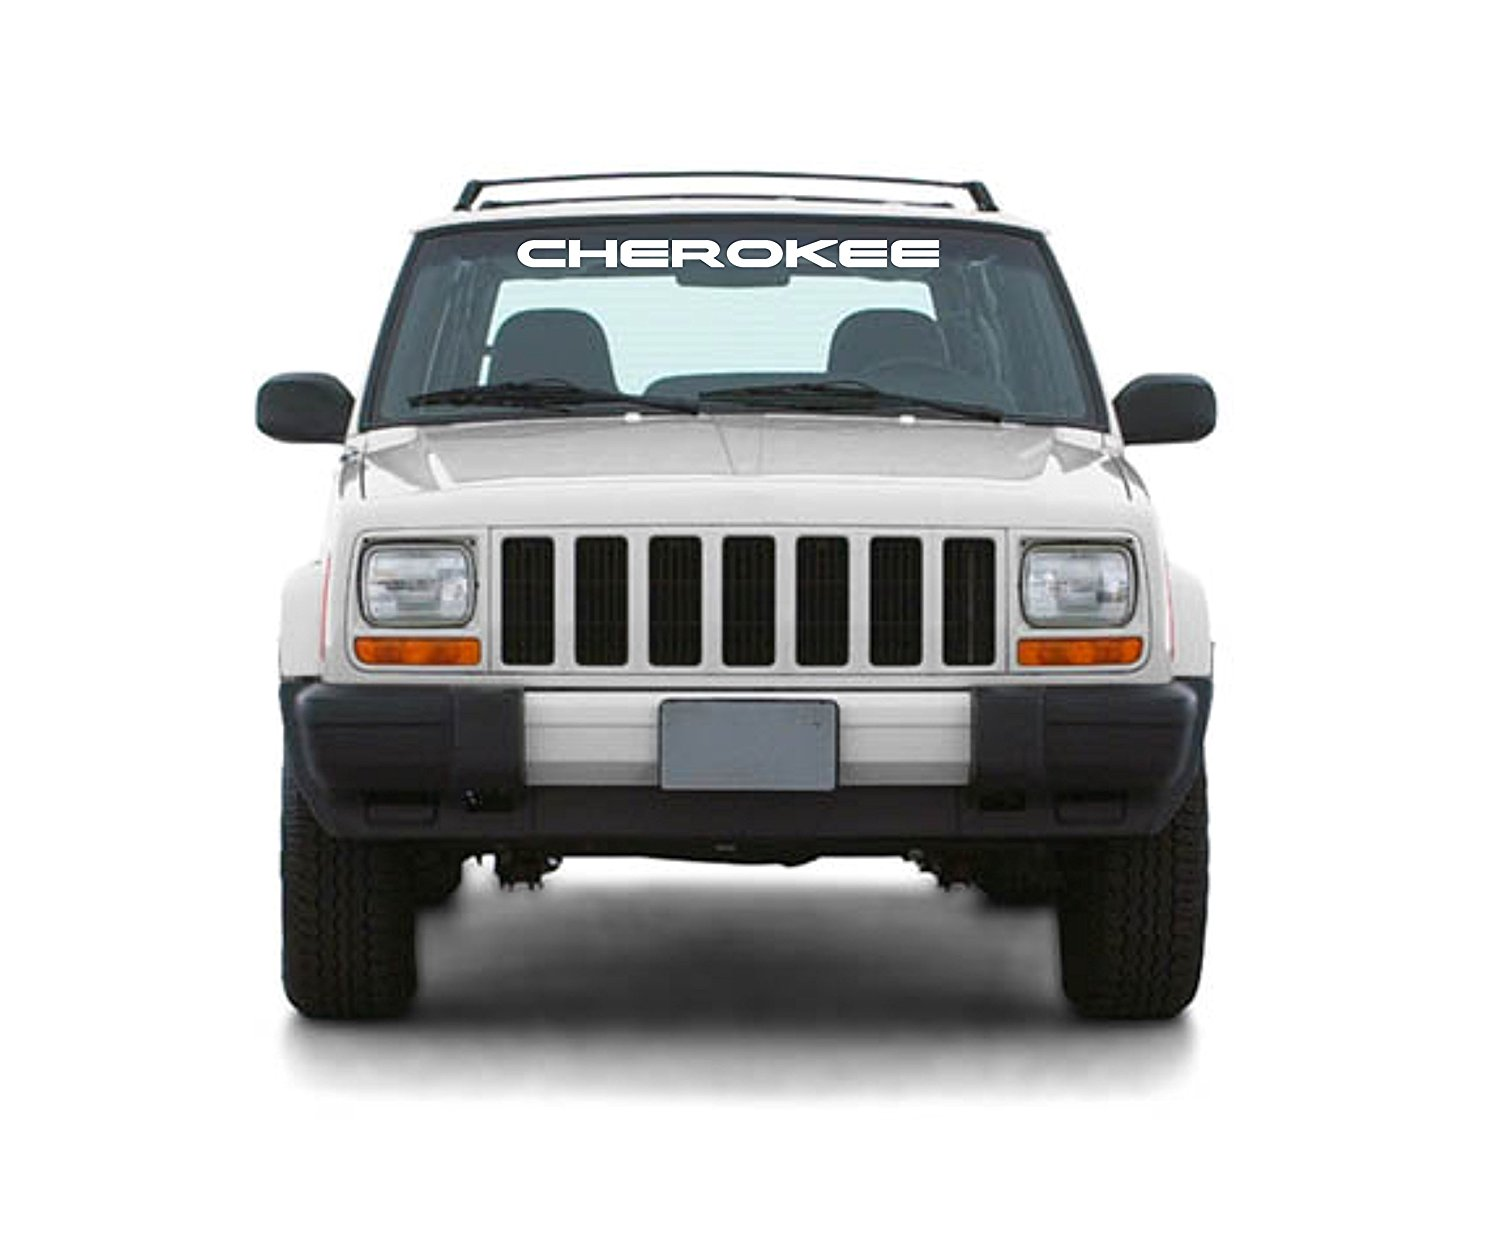 Cheap Jeep Windshield Decal Find Jeep Windshield Decal